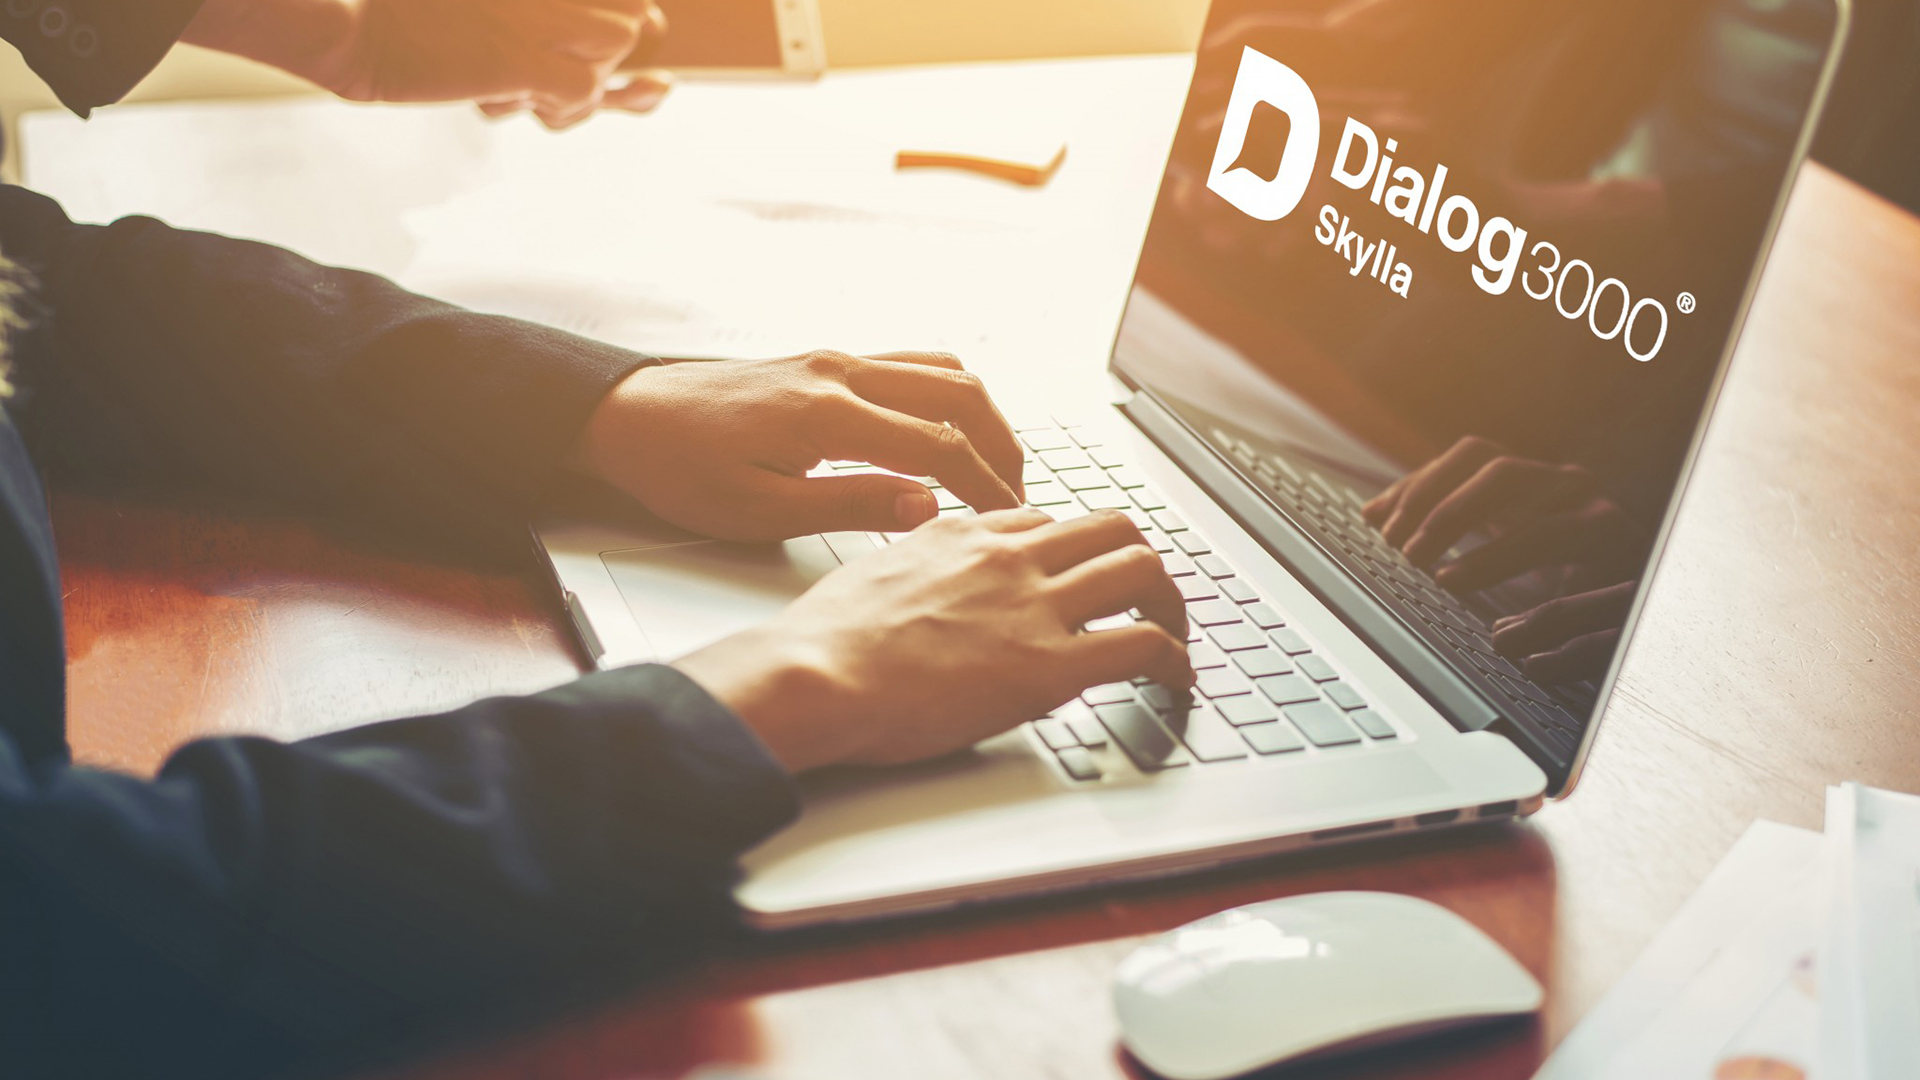 about_dialog